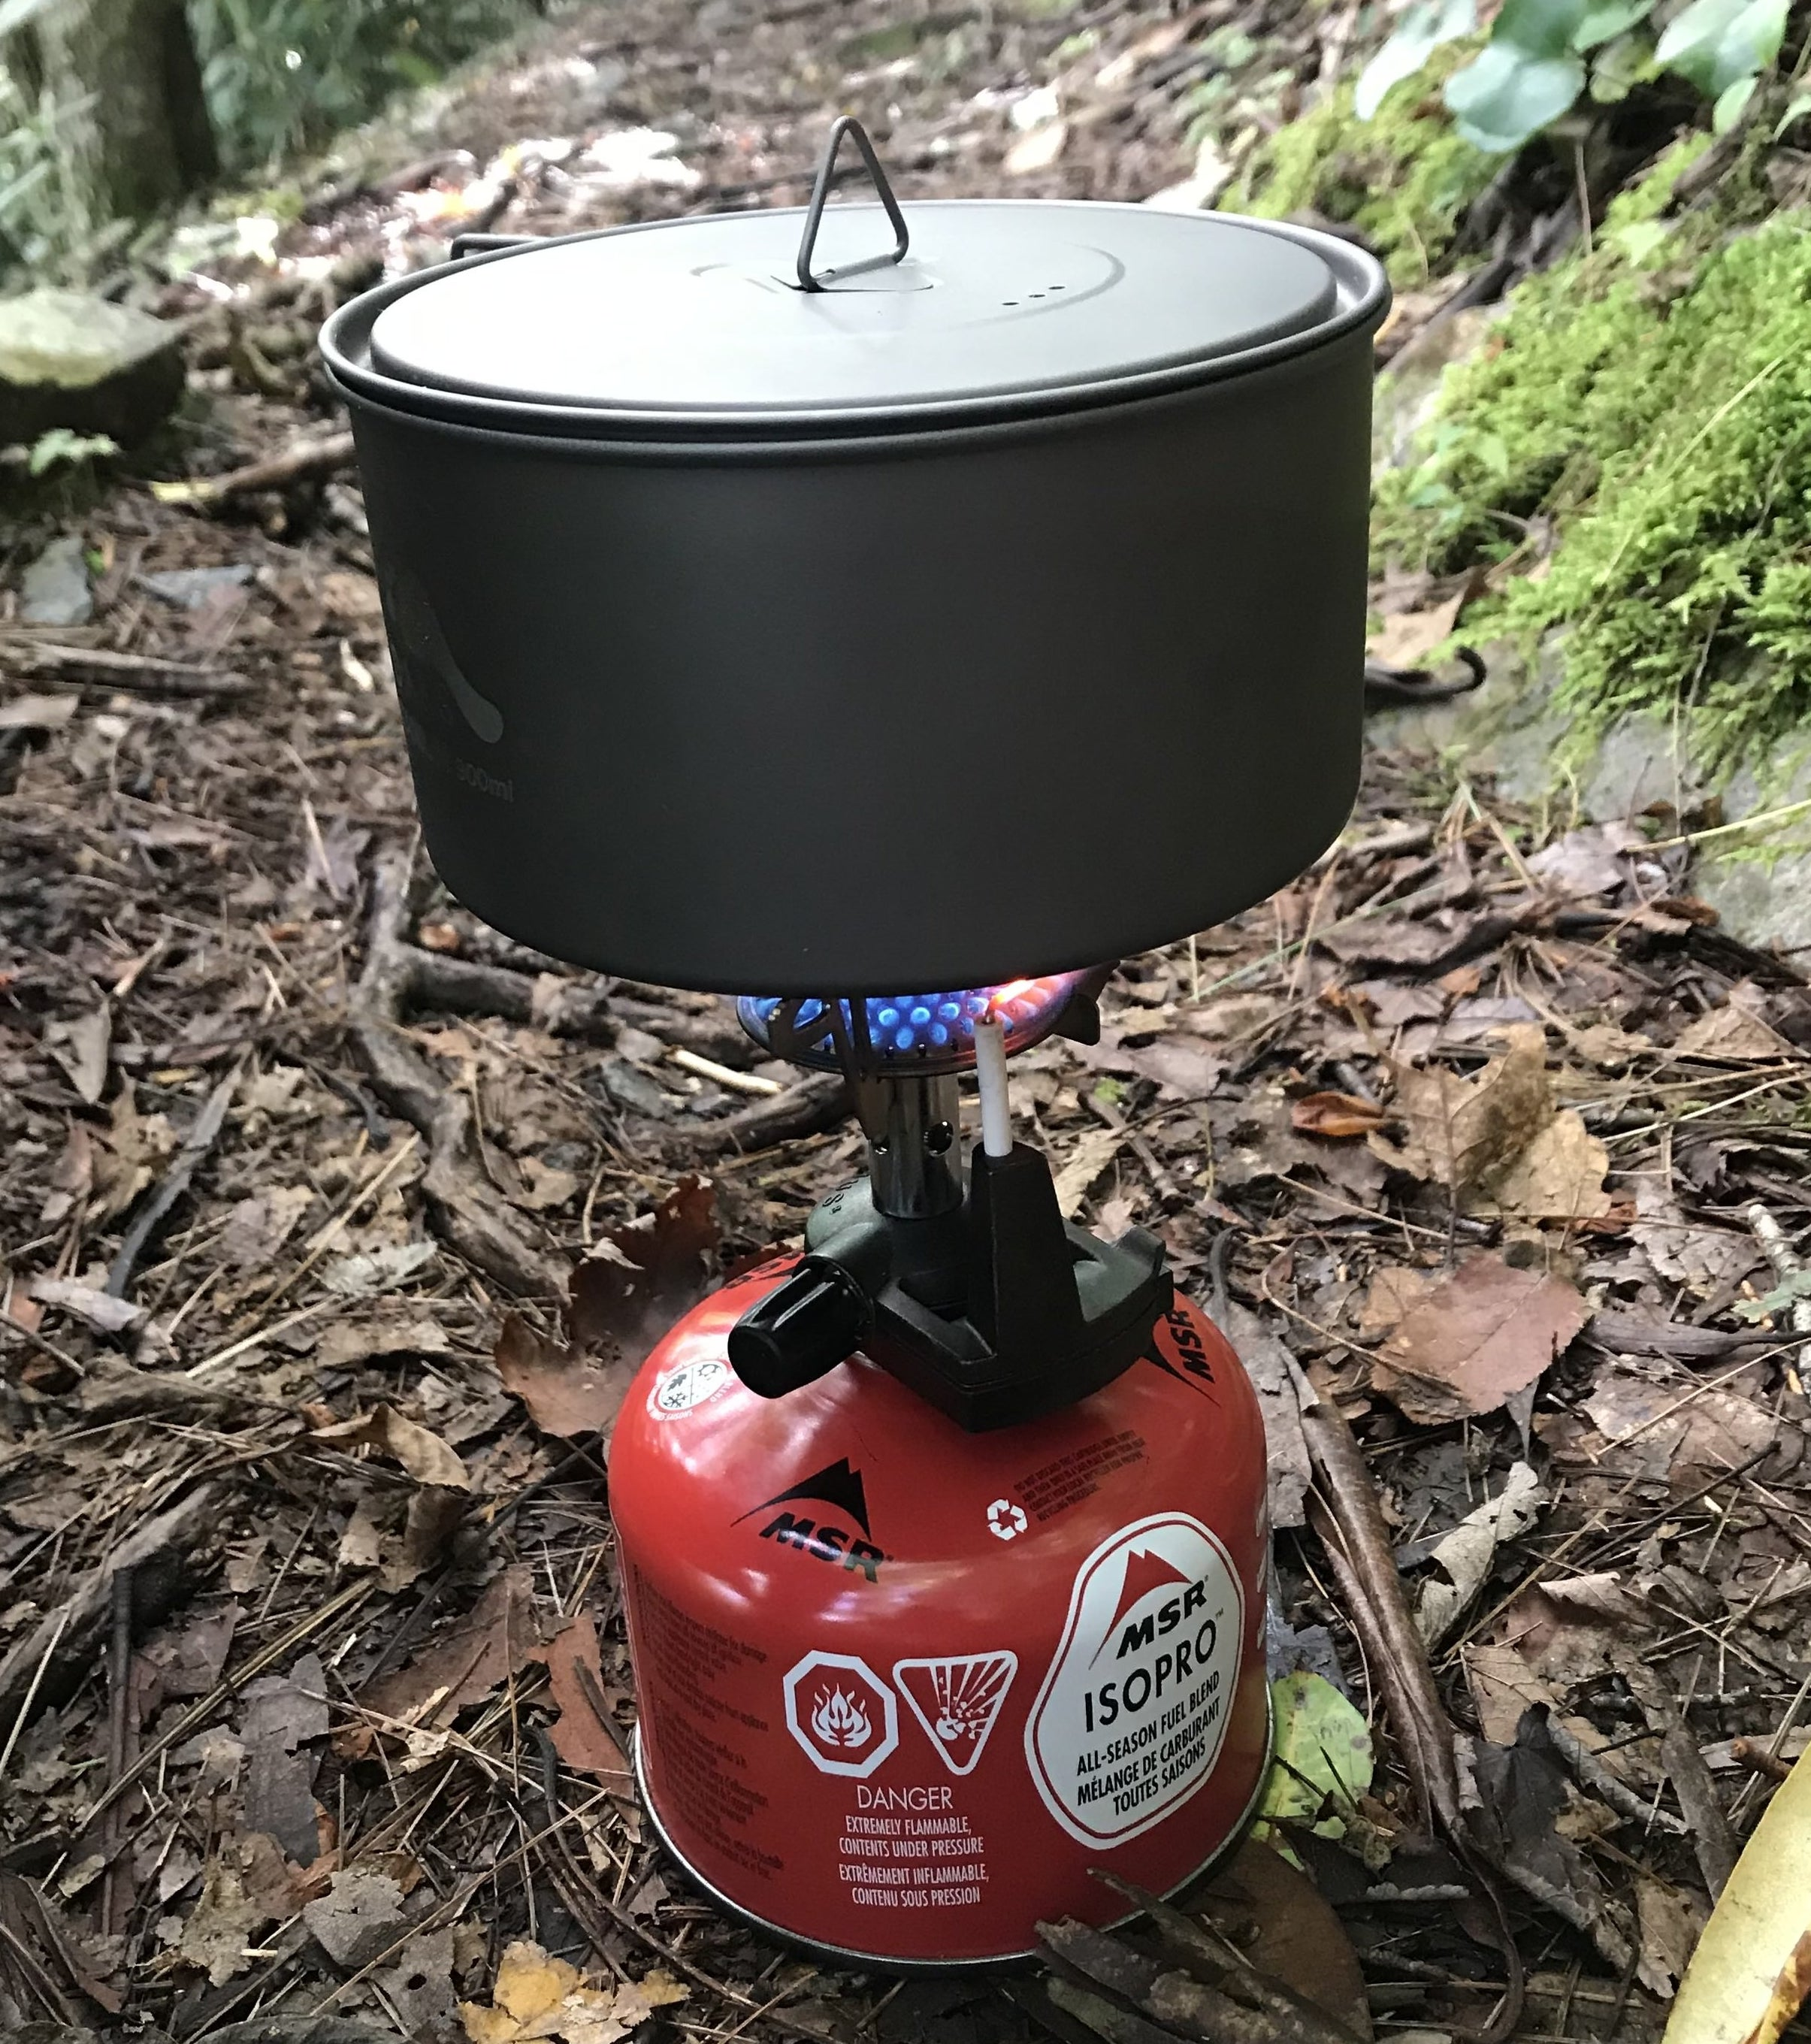 the writer's pot and lid sitting on a small lit camp stove